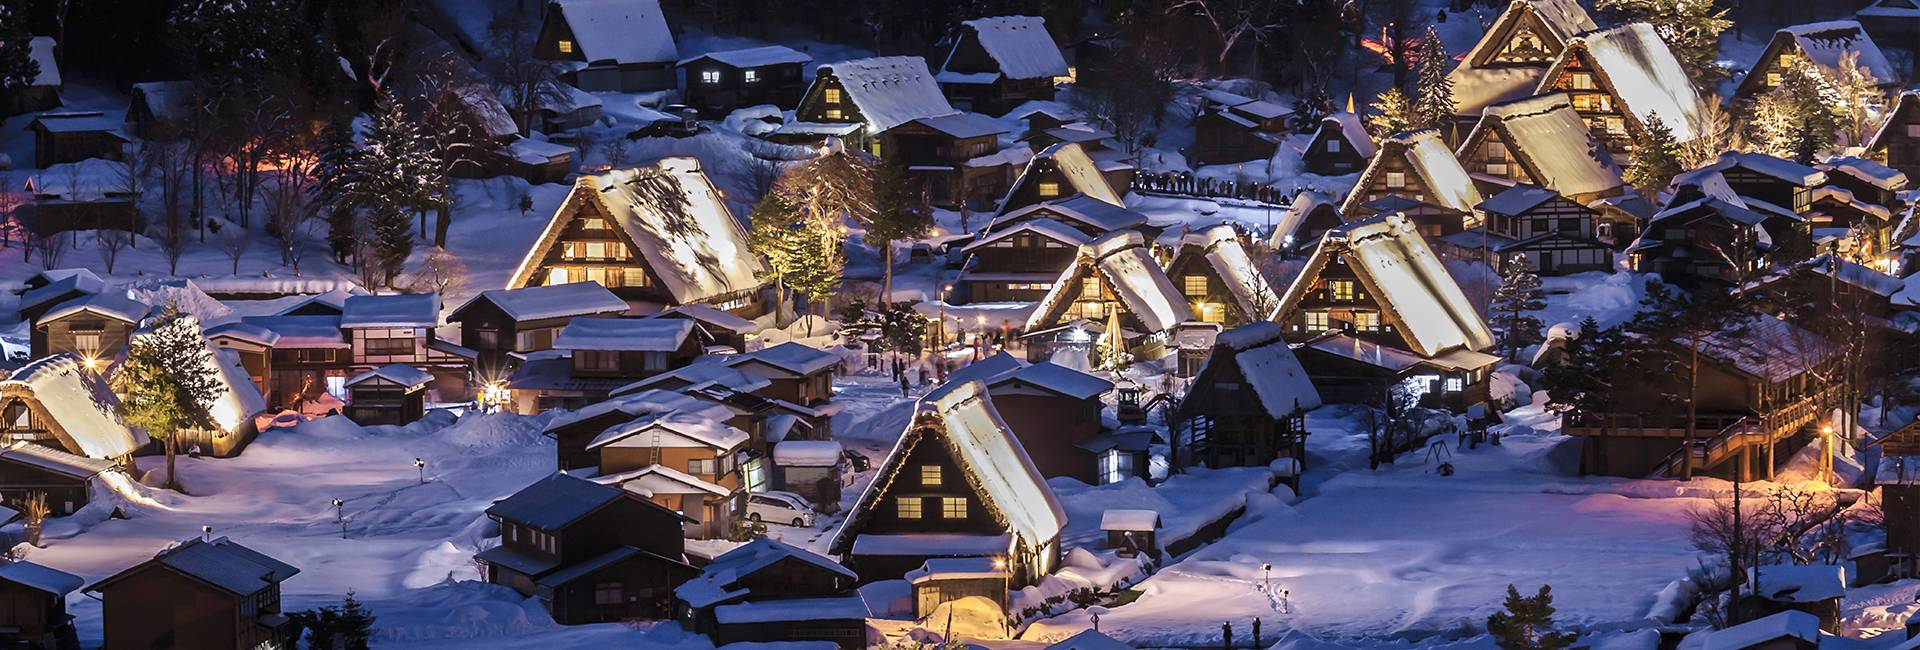 Shirakawa-go au Japon